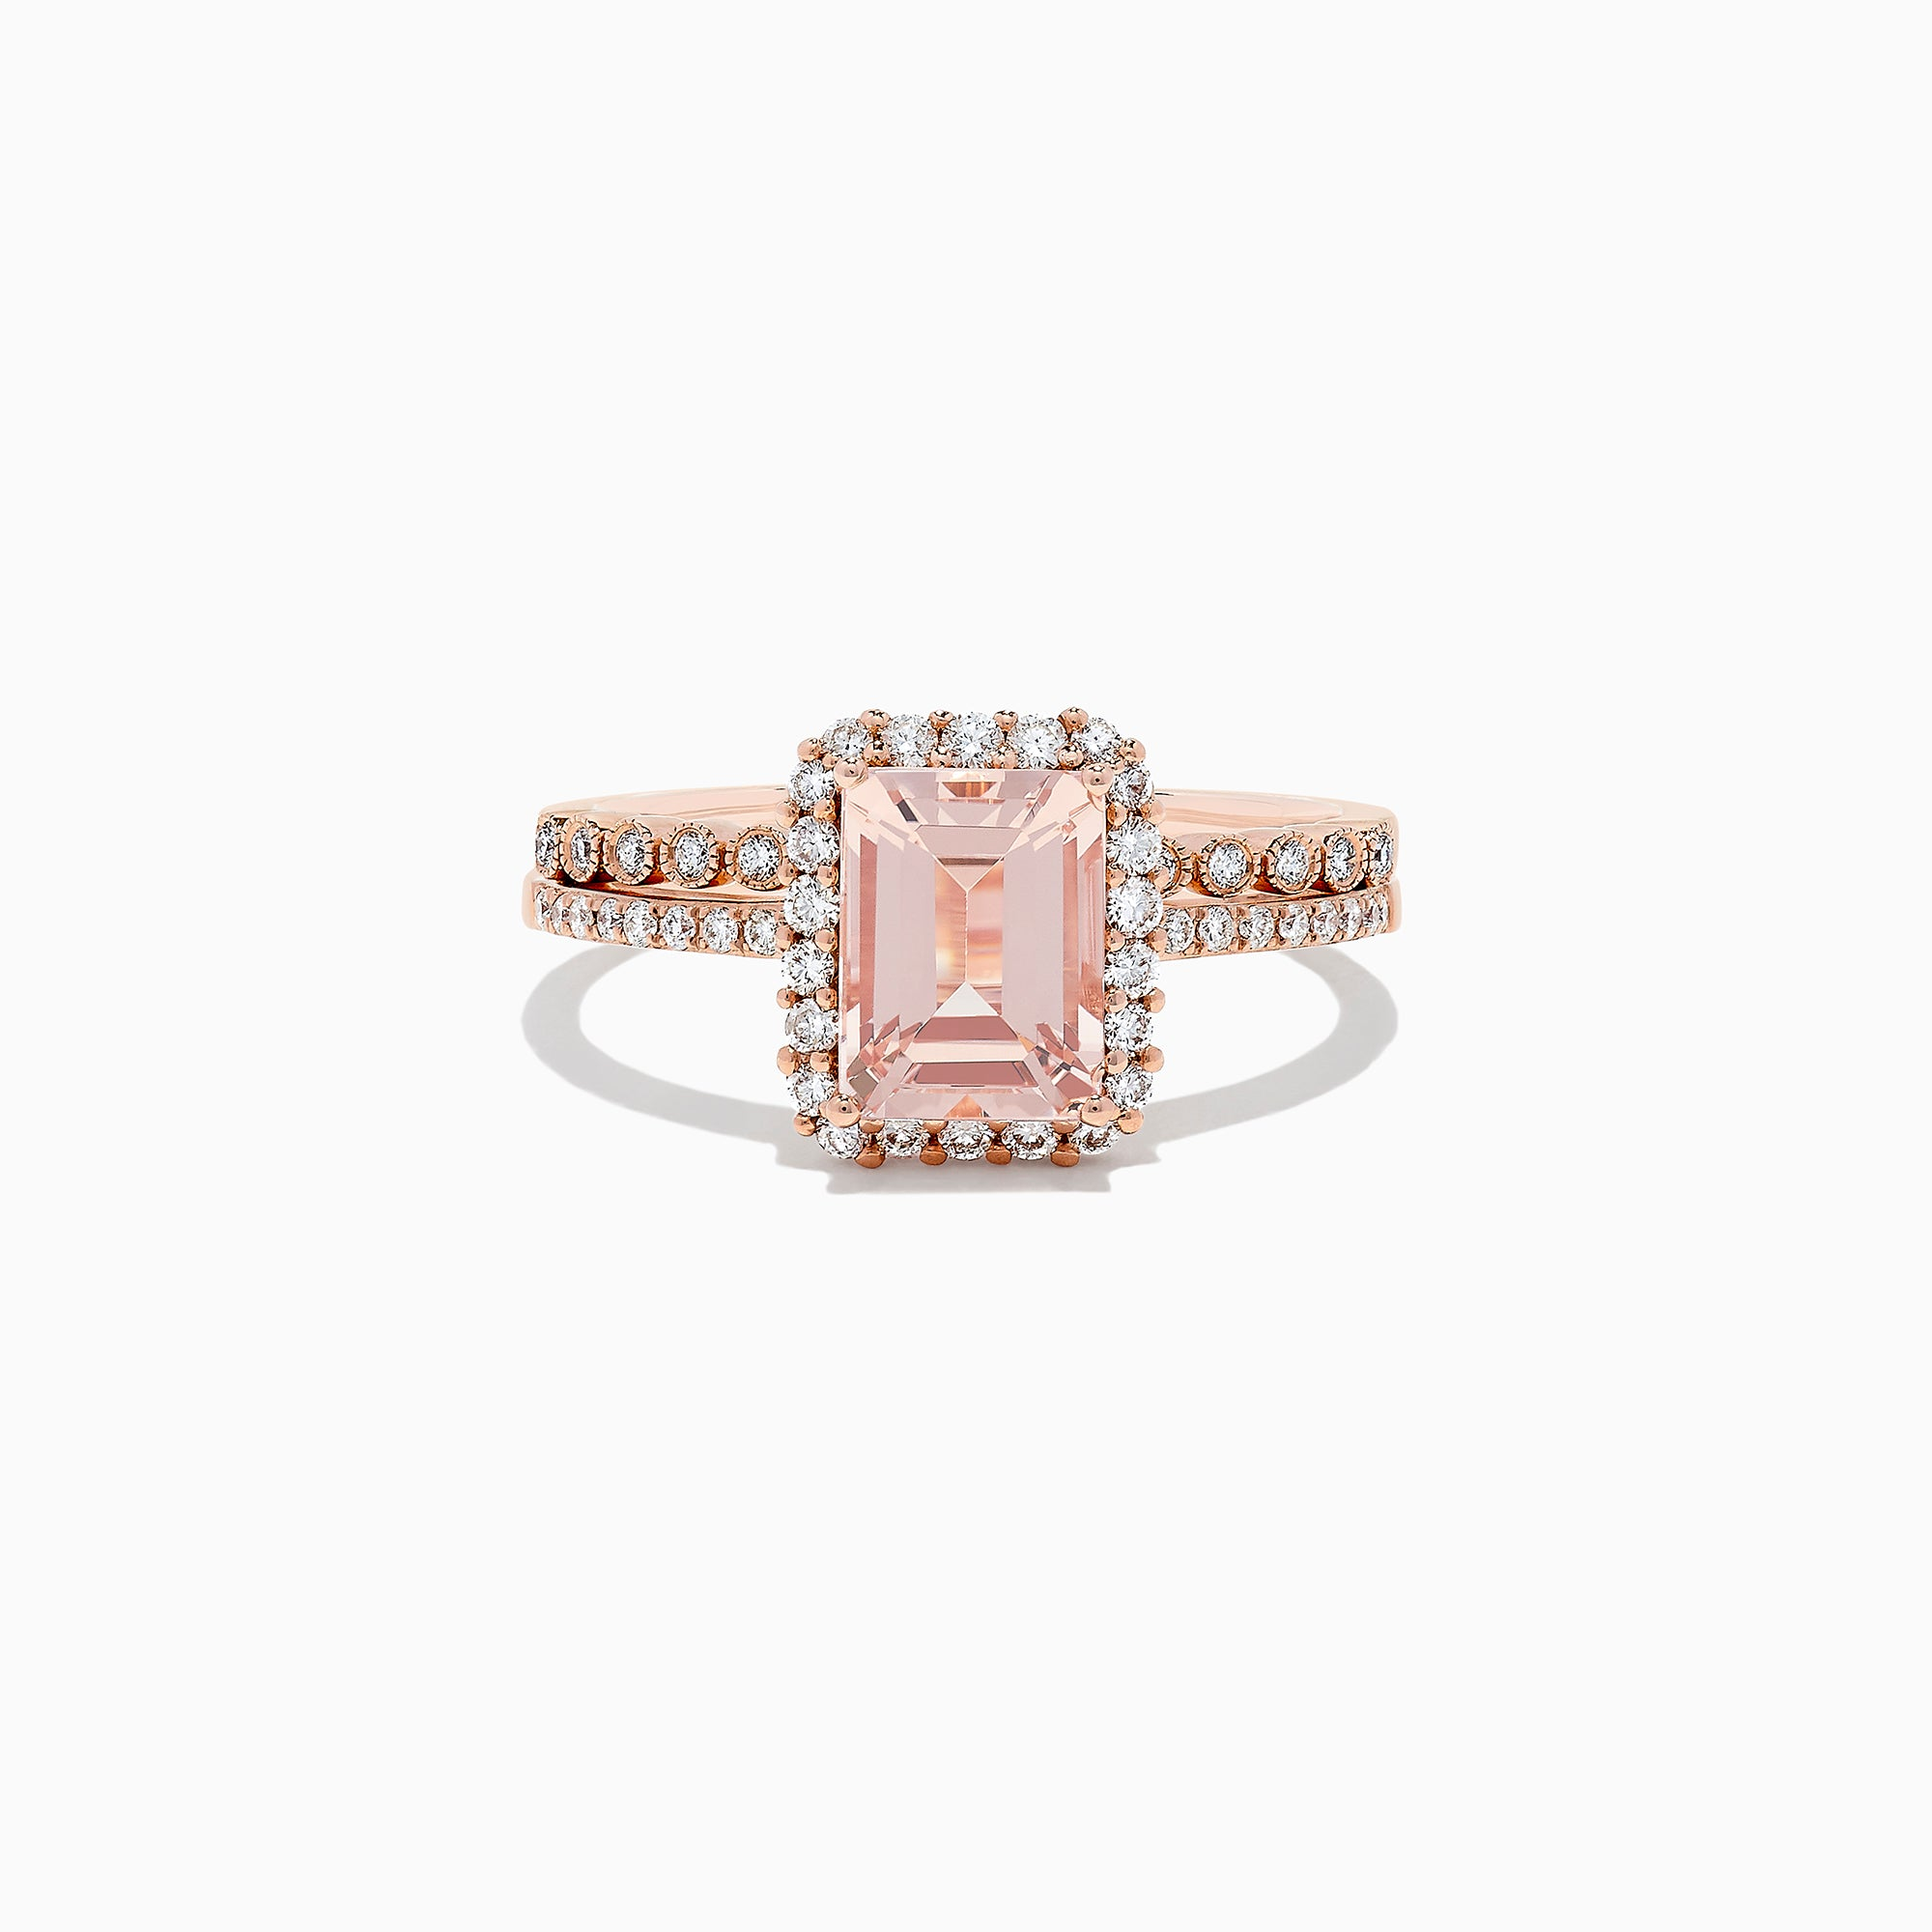 Effy Blush 14K Rose Gold Morganite and Diamond Ring, 1.53 TCW